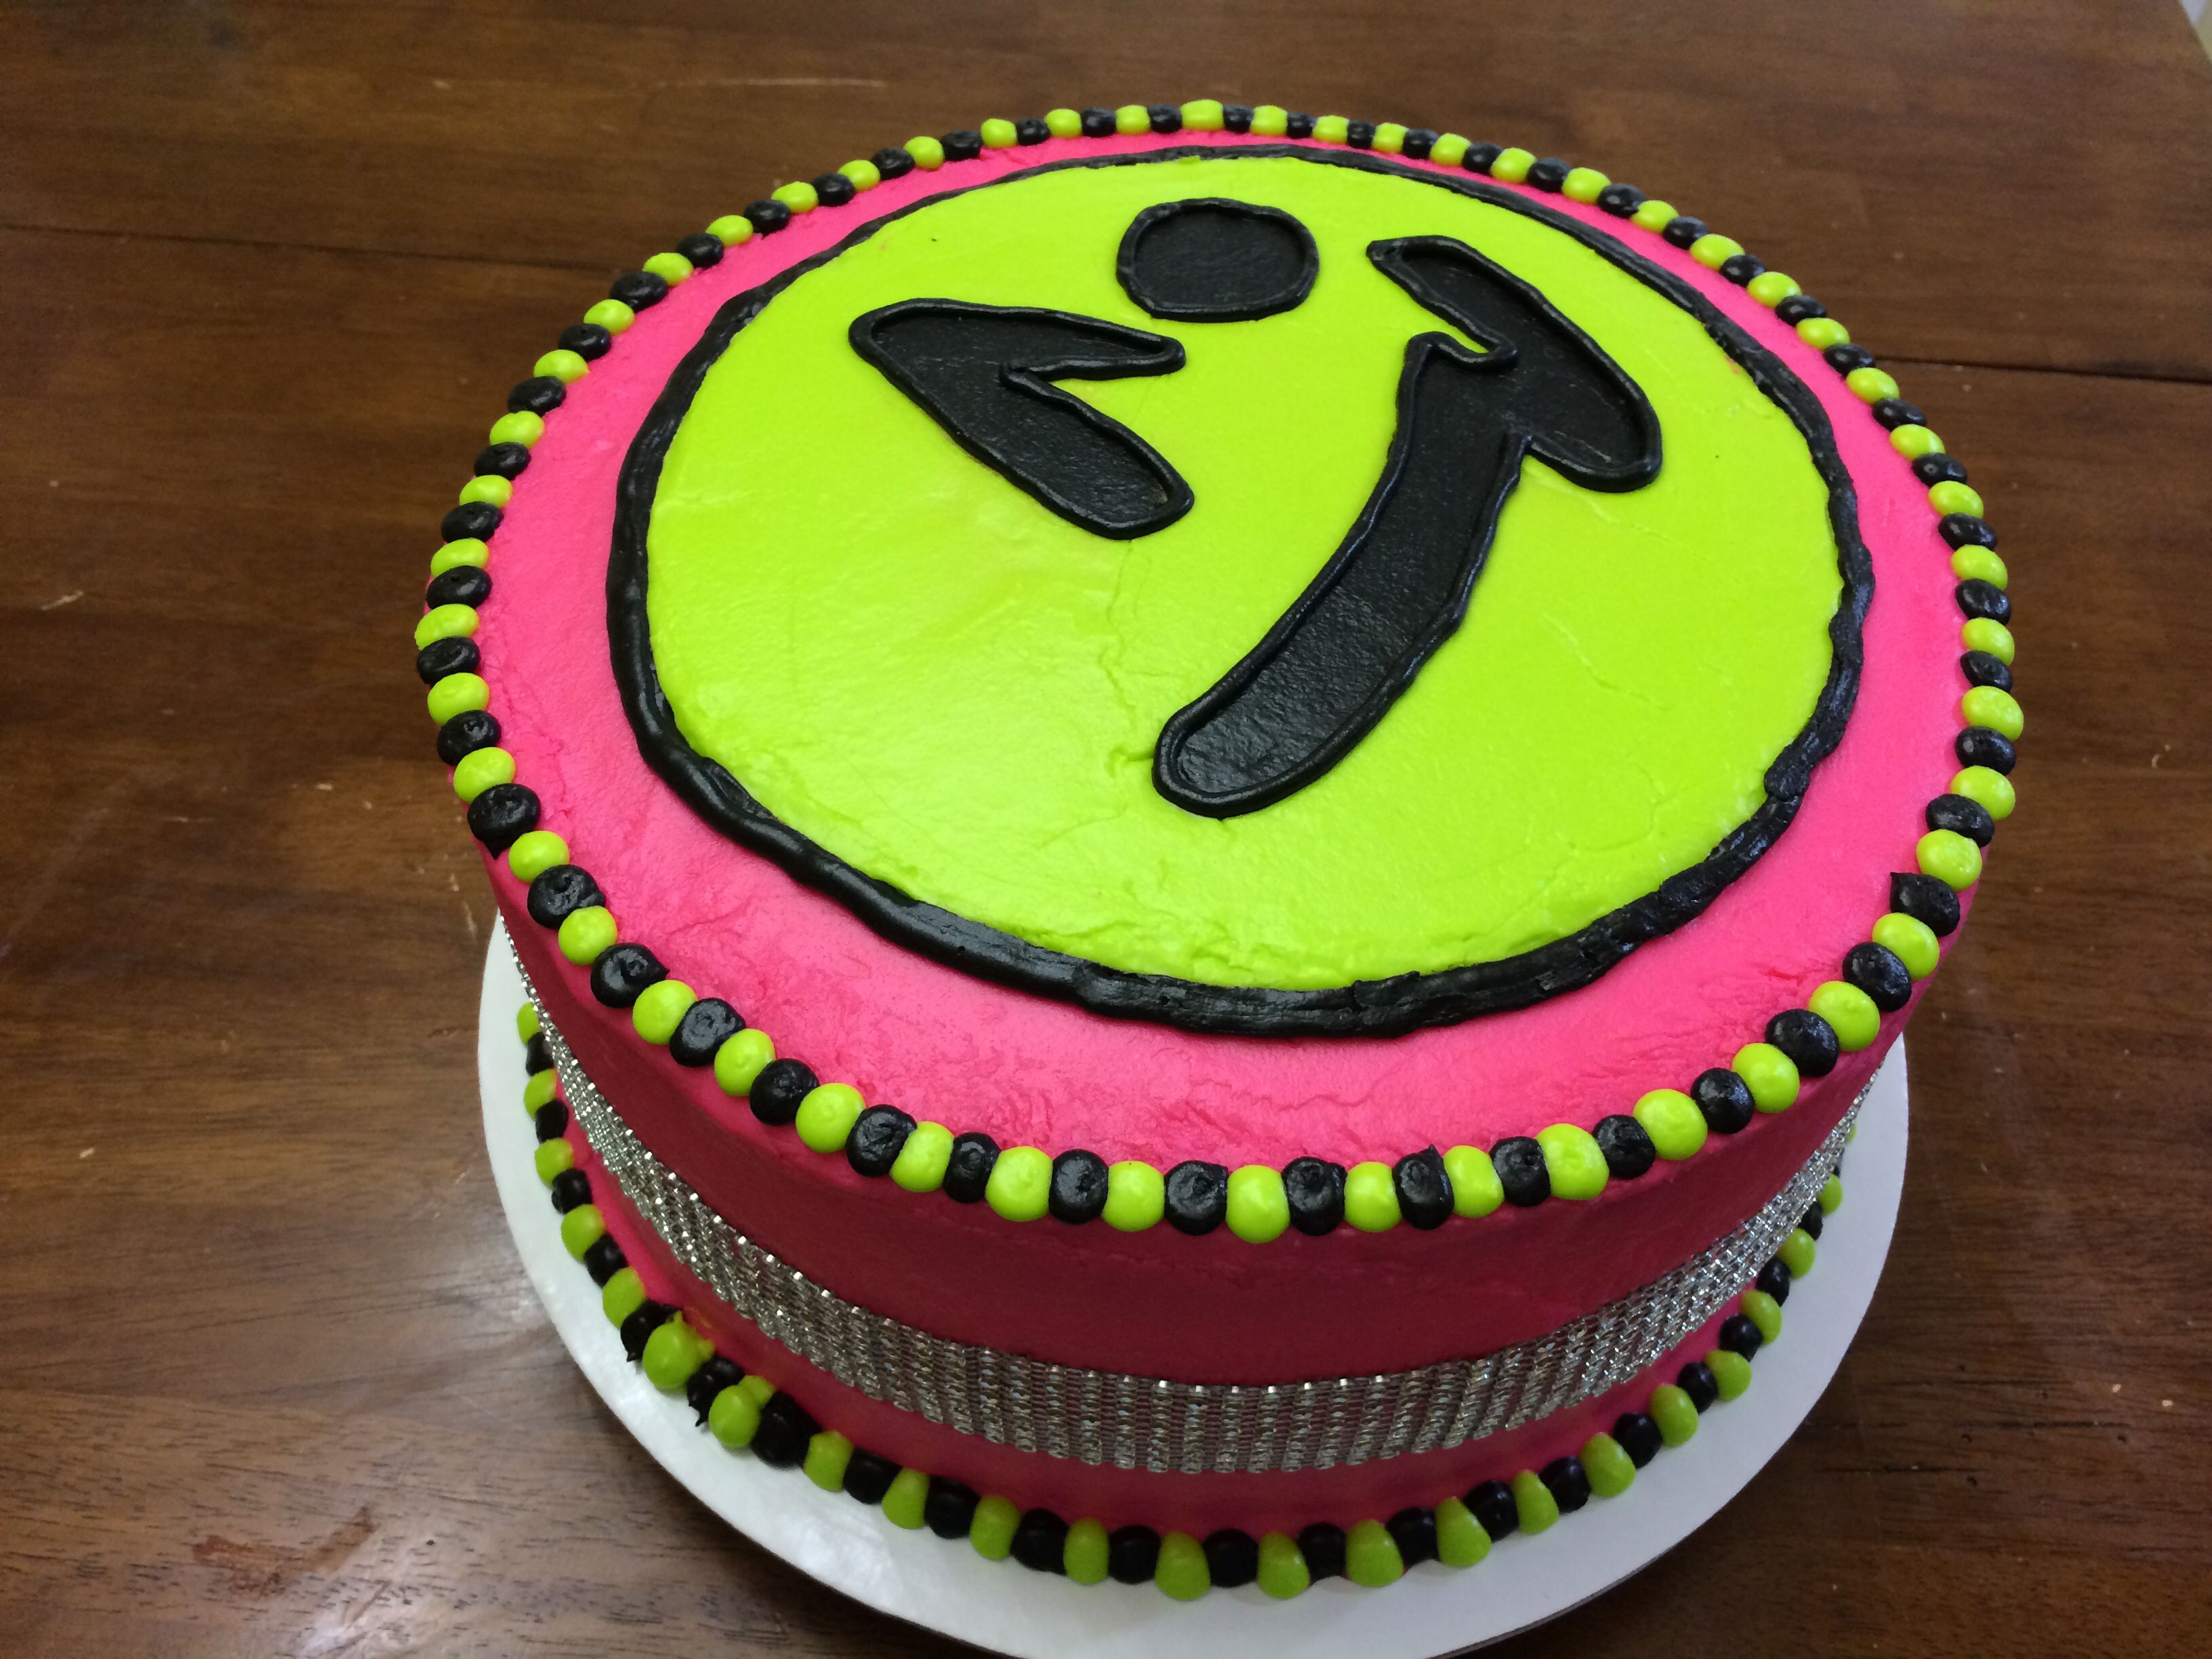 Zumba Birthday Cake For My Sister She Is A Zin Zumba Instructor And